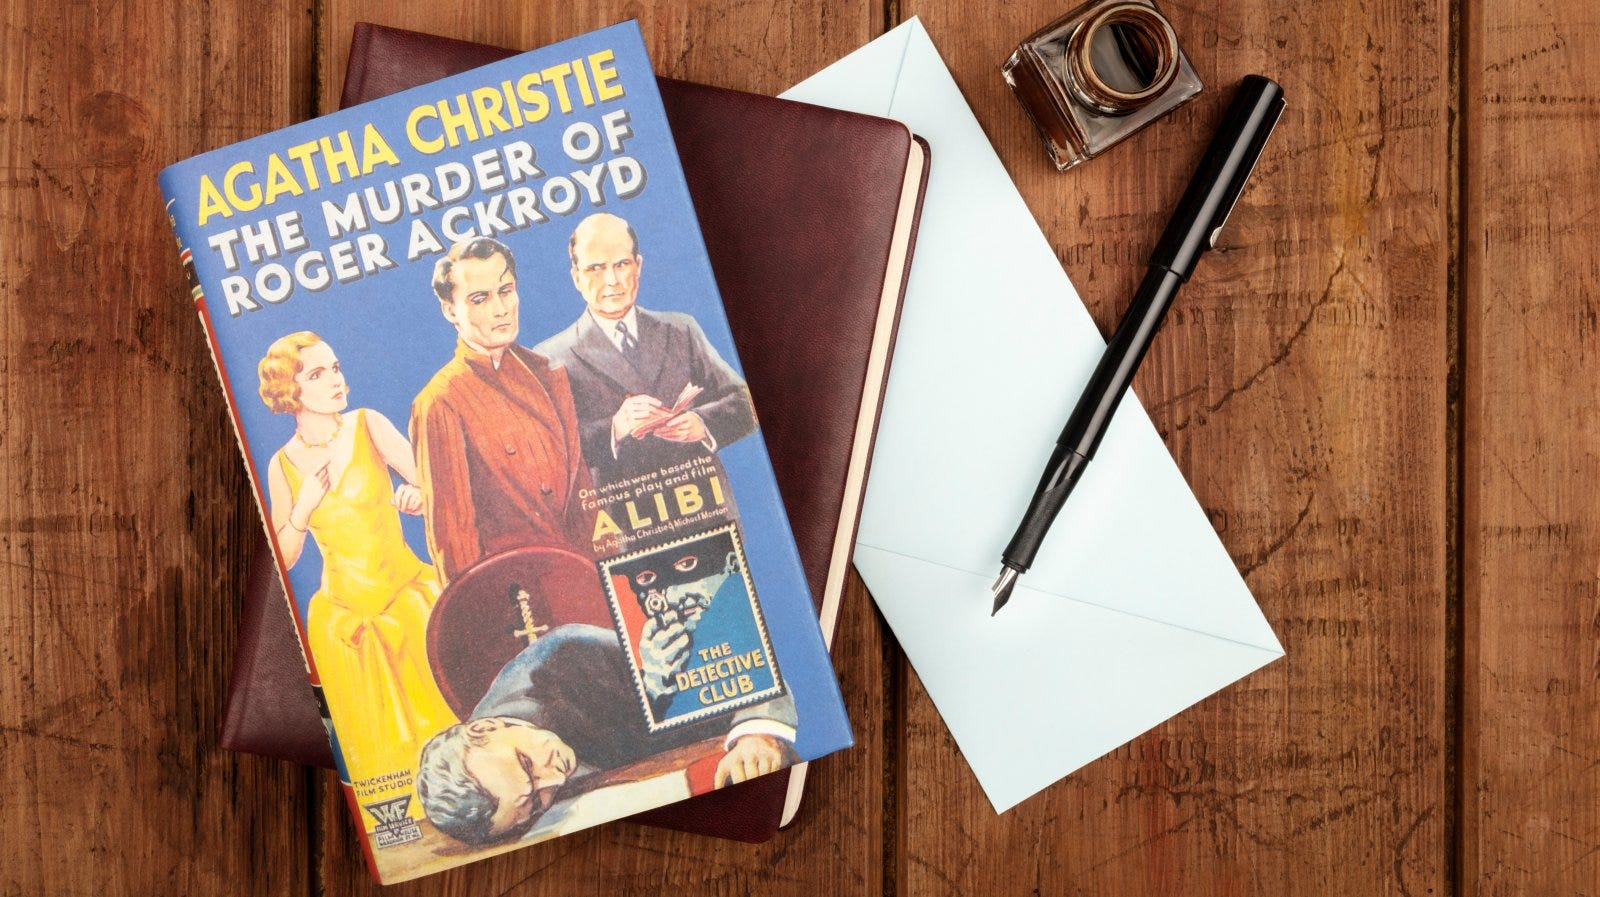 The Murder of Roger Ackroyd, a detective novel by Agatha Christie